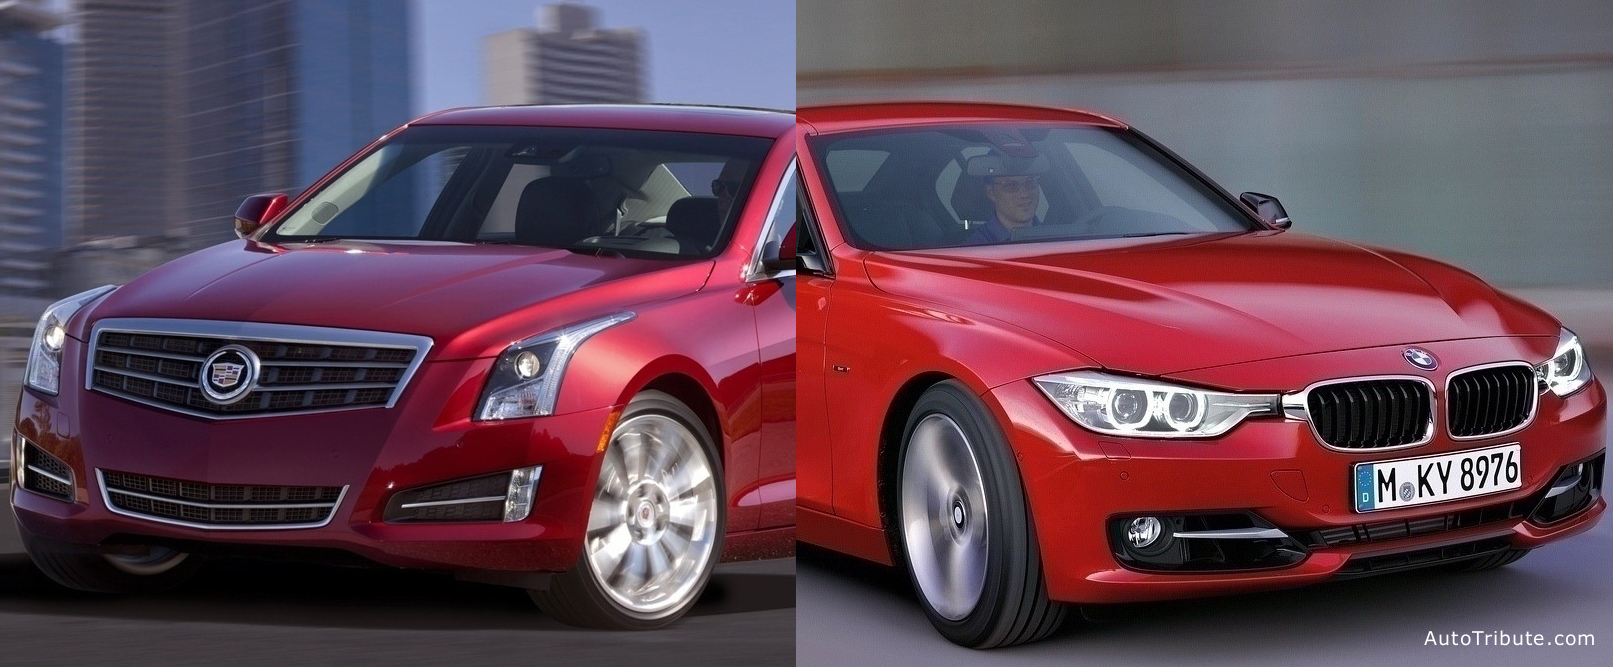 Cadillac-ATS vs BMW-3 Series